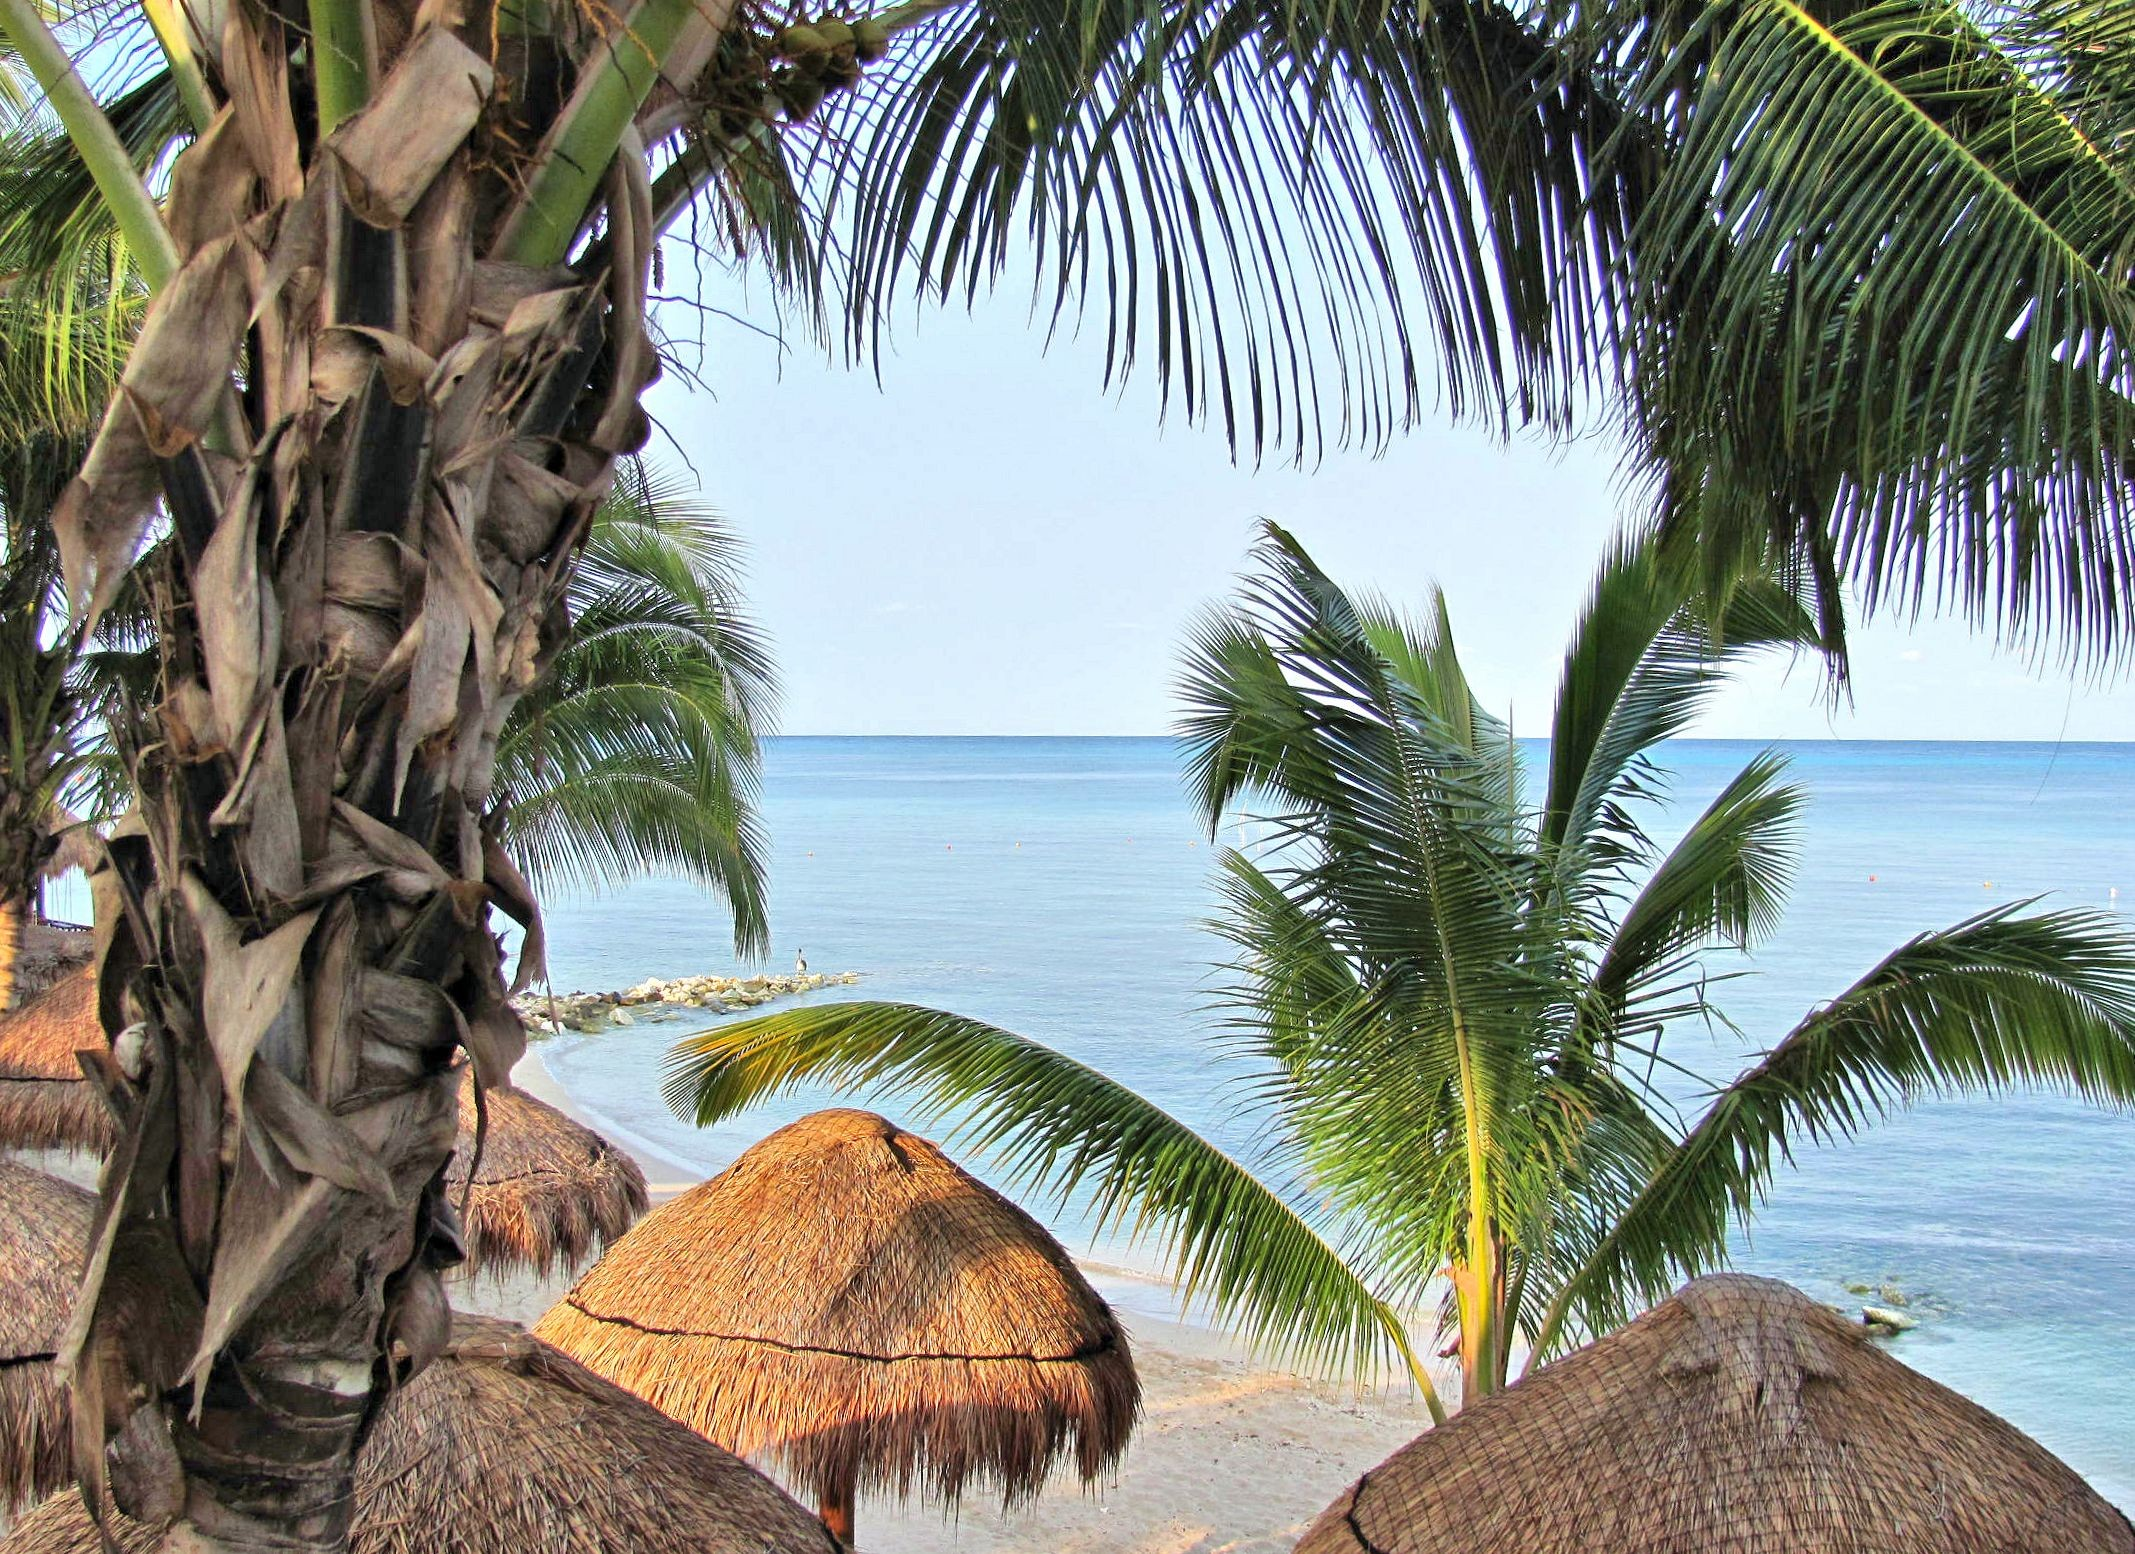 Palms Mexico View Early Blue Paradise Island Bech Nature - Attalea Speciosa , HD Wallpaper & Backgrounds